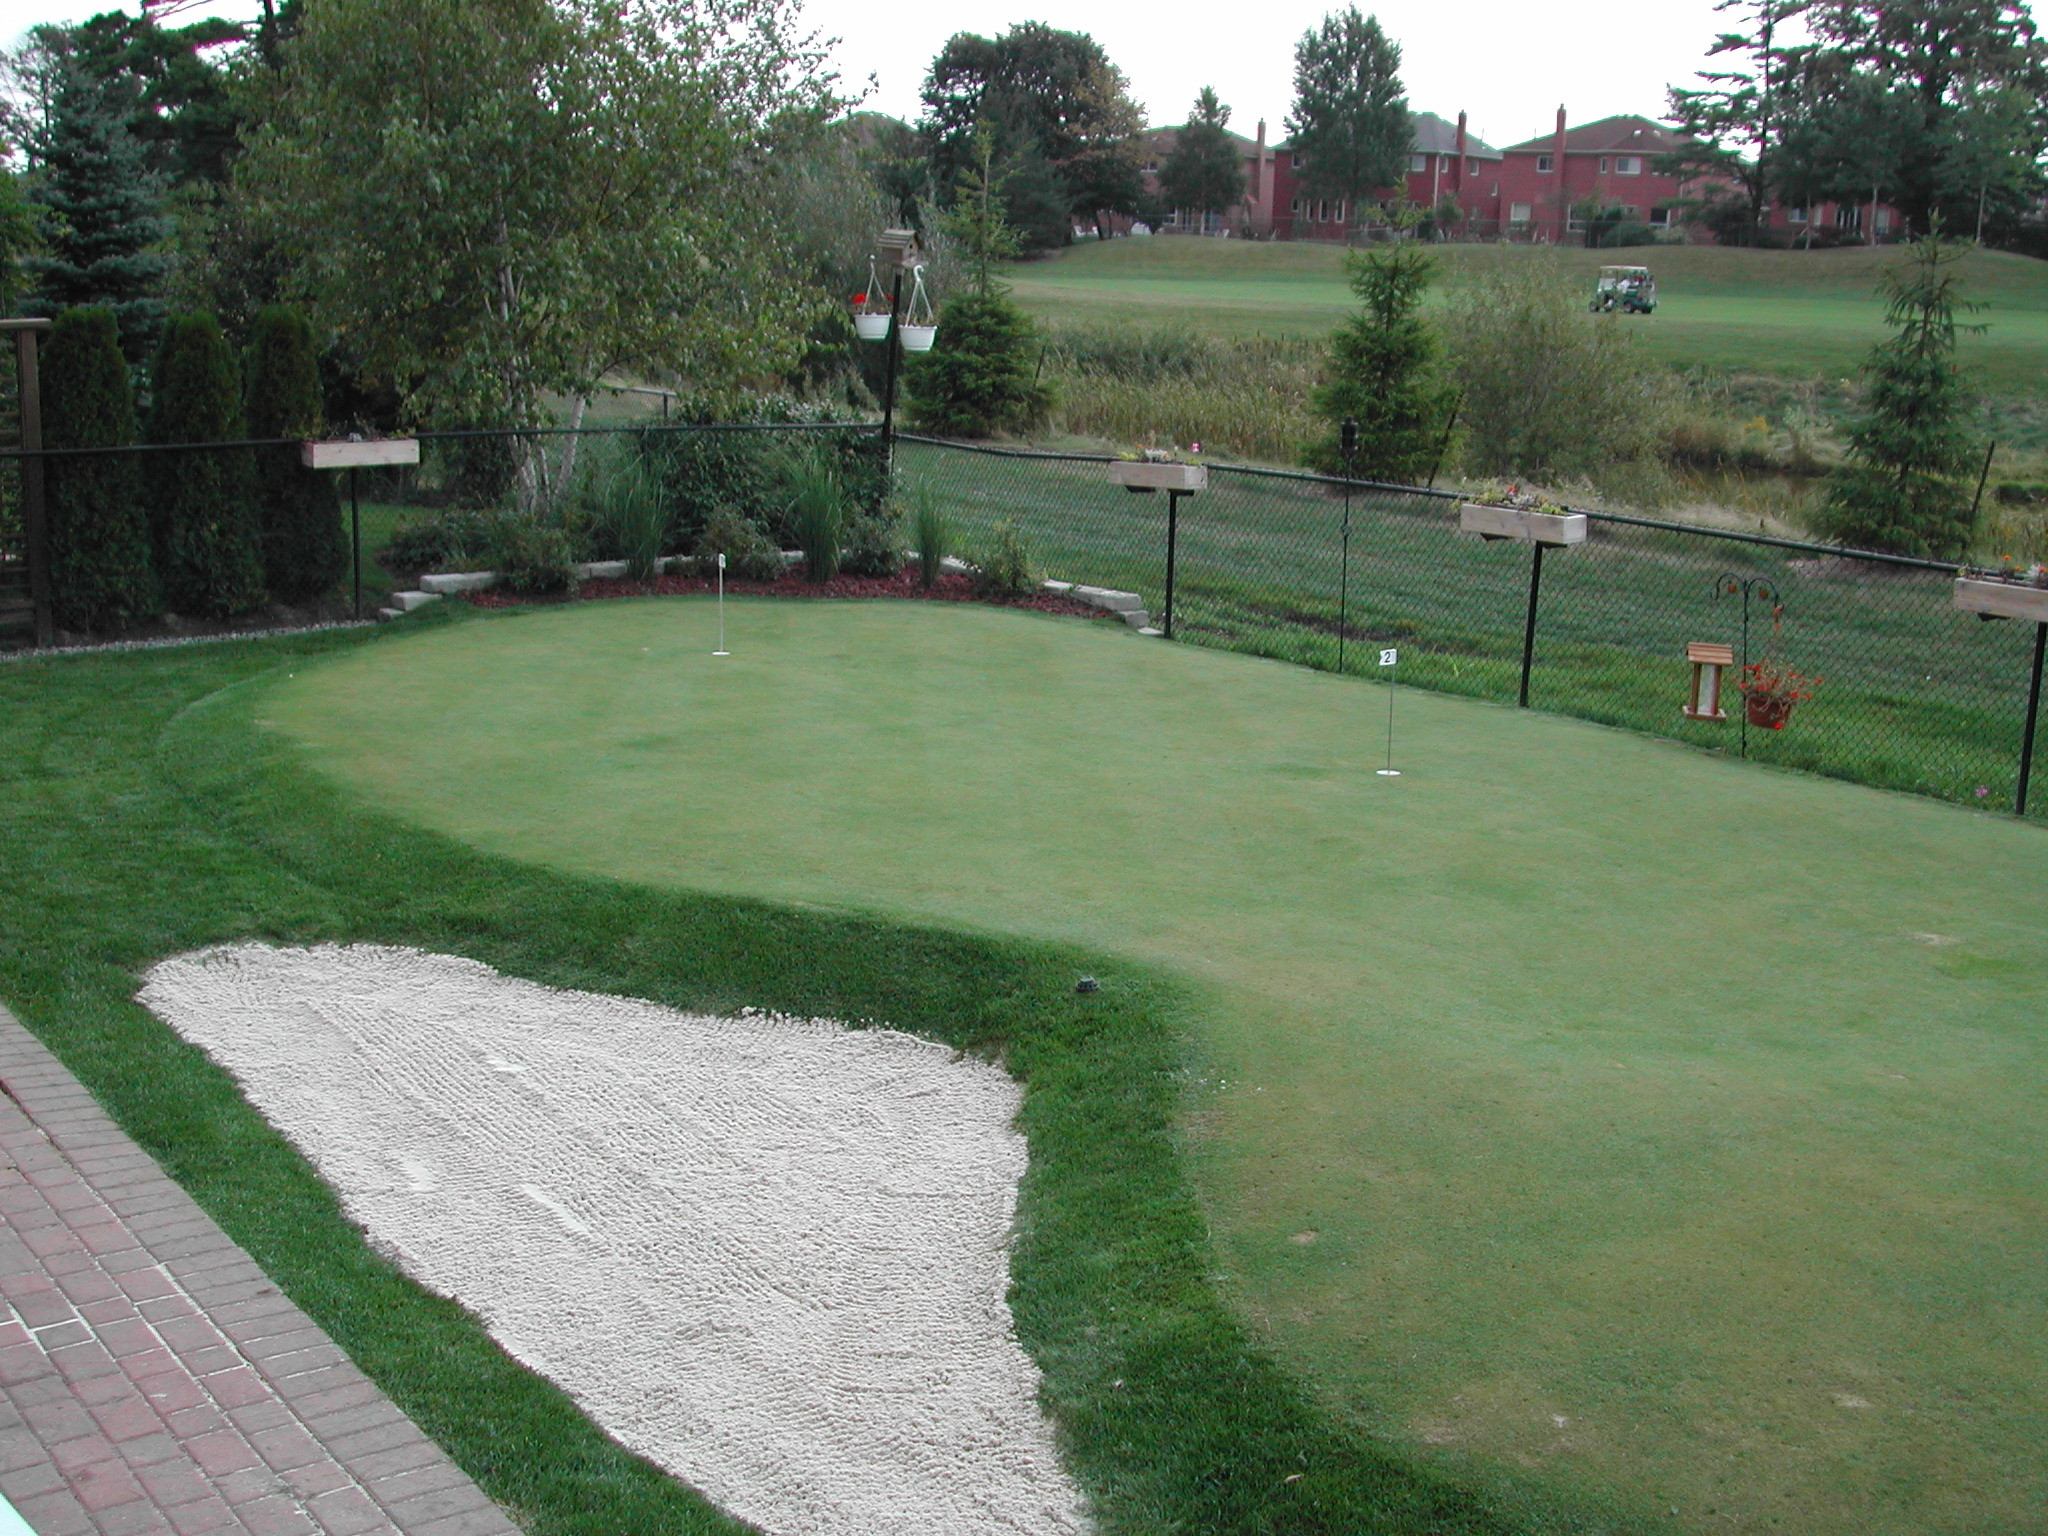 Best ideas about Backyard Putting Green . Save or Pin Putting Greens Backyard Golf Green s Now.